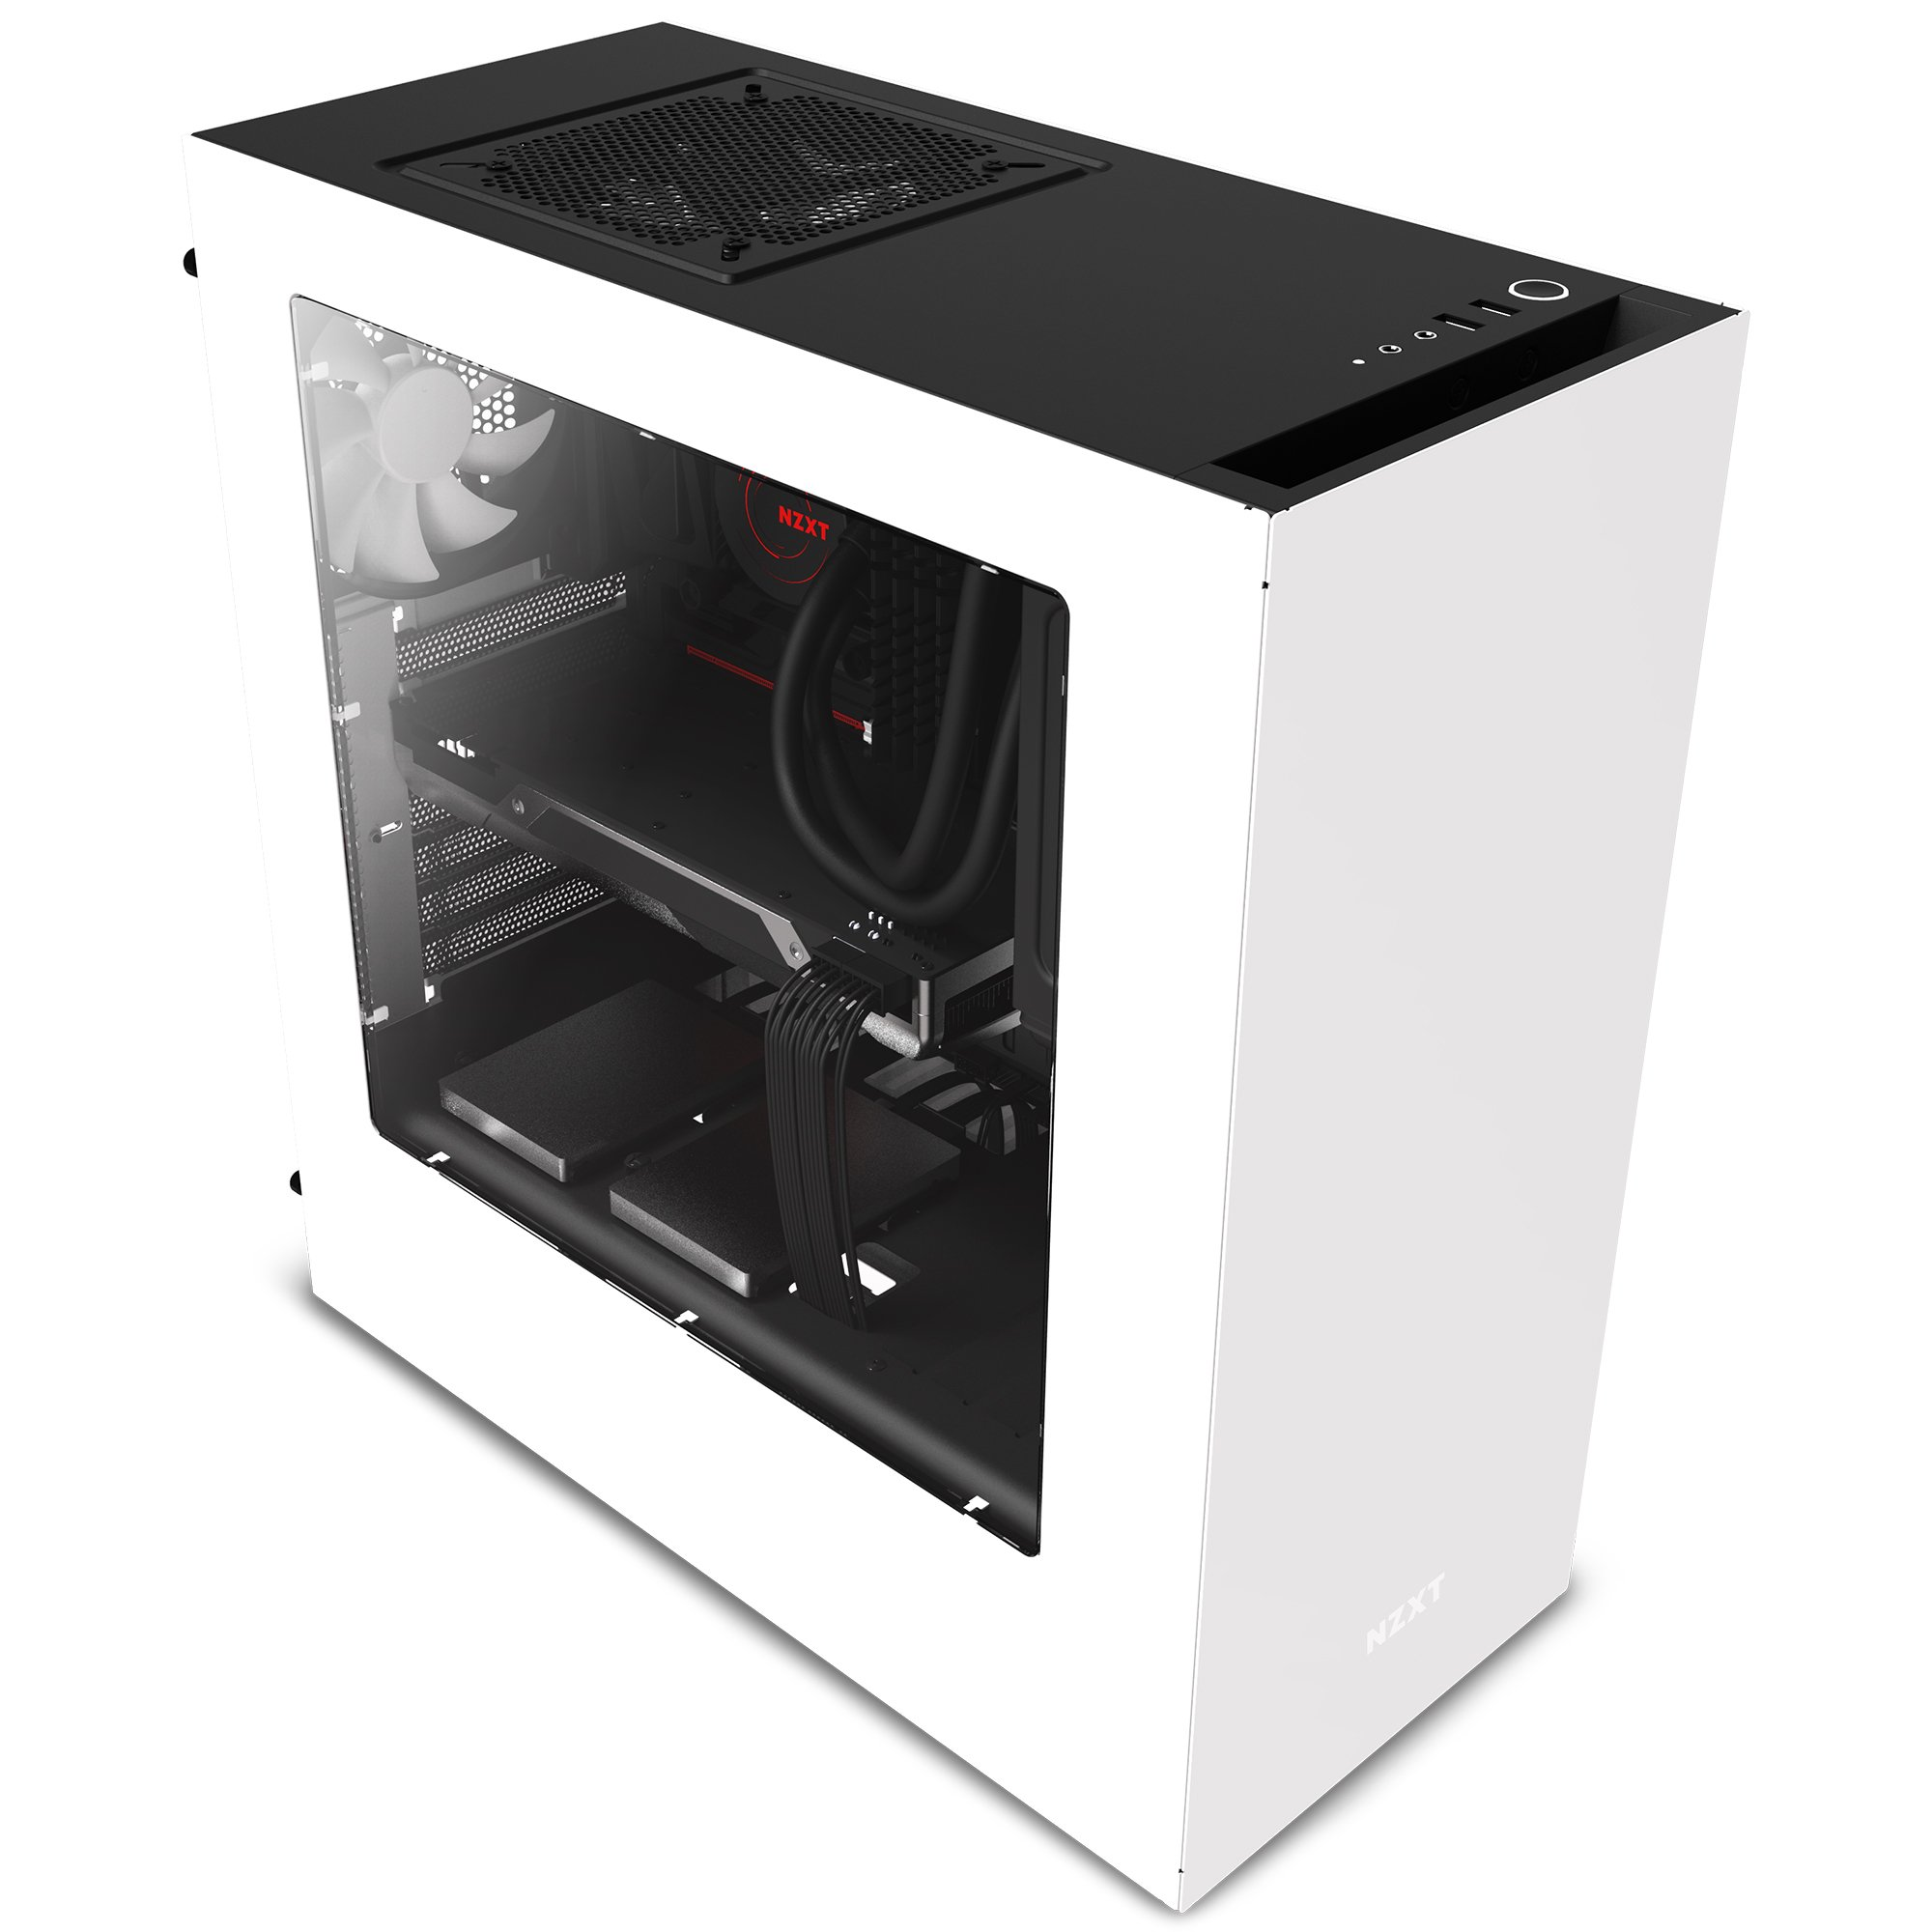 NZXT S340 Mid Tower Computer Case, White (CA-S340W-W1) by Nzxt (Image #11)